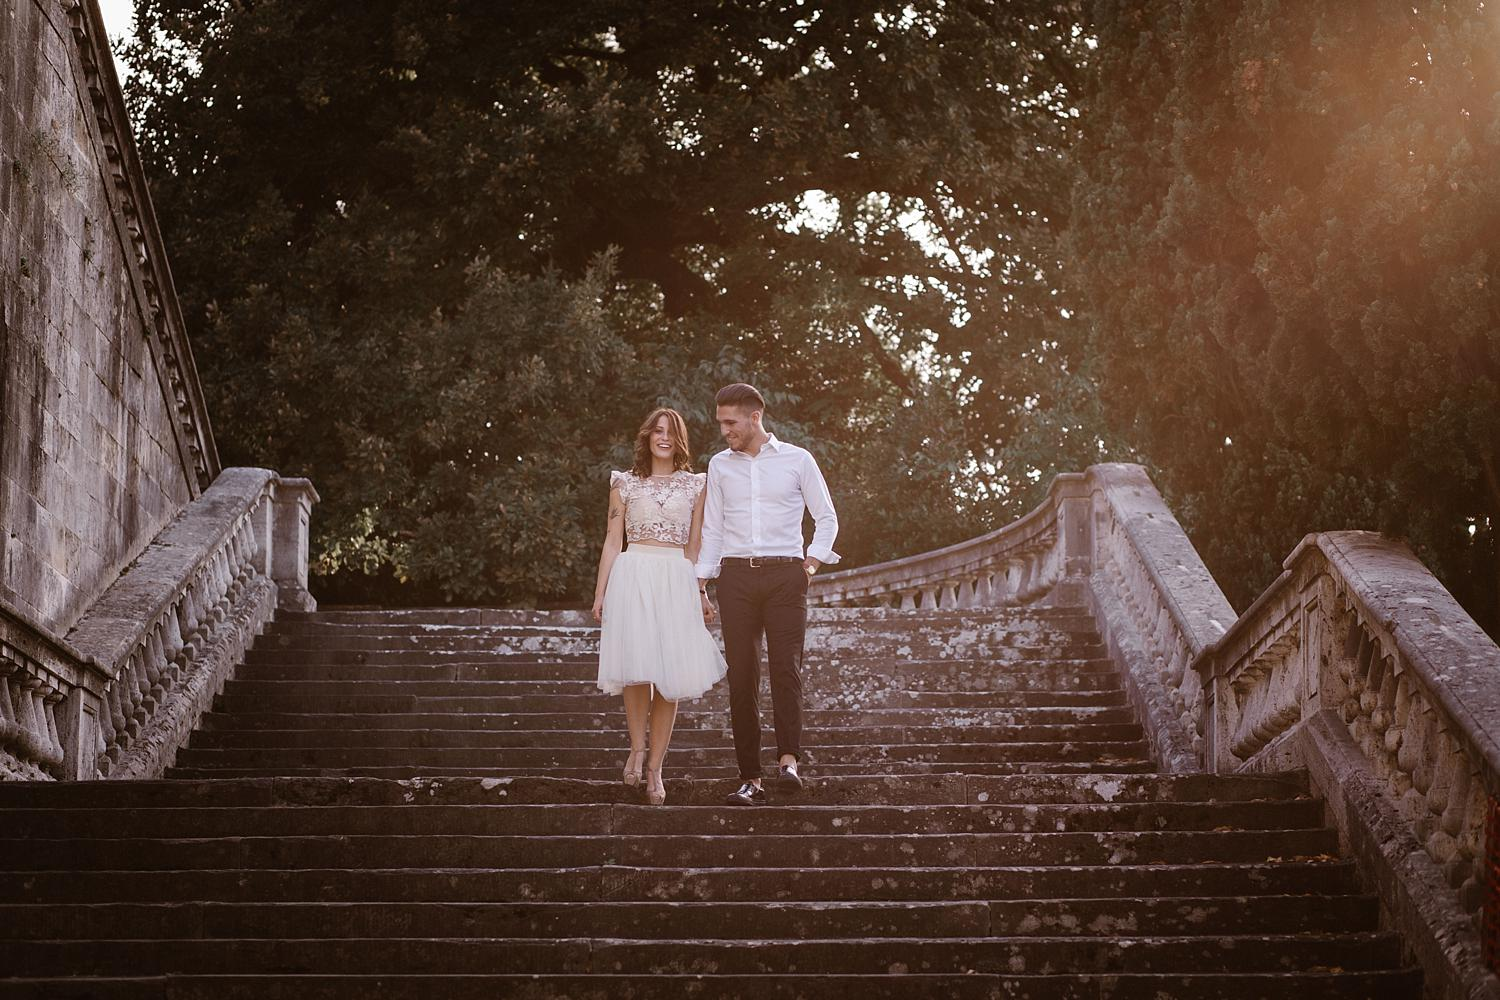 weddingphotographer florence 45 - Maddalena & Arturo - A Chic Anniversary Session in Florence